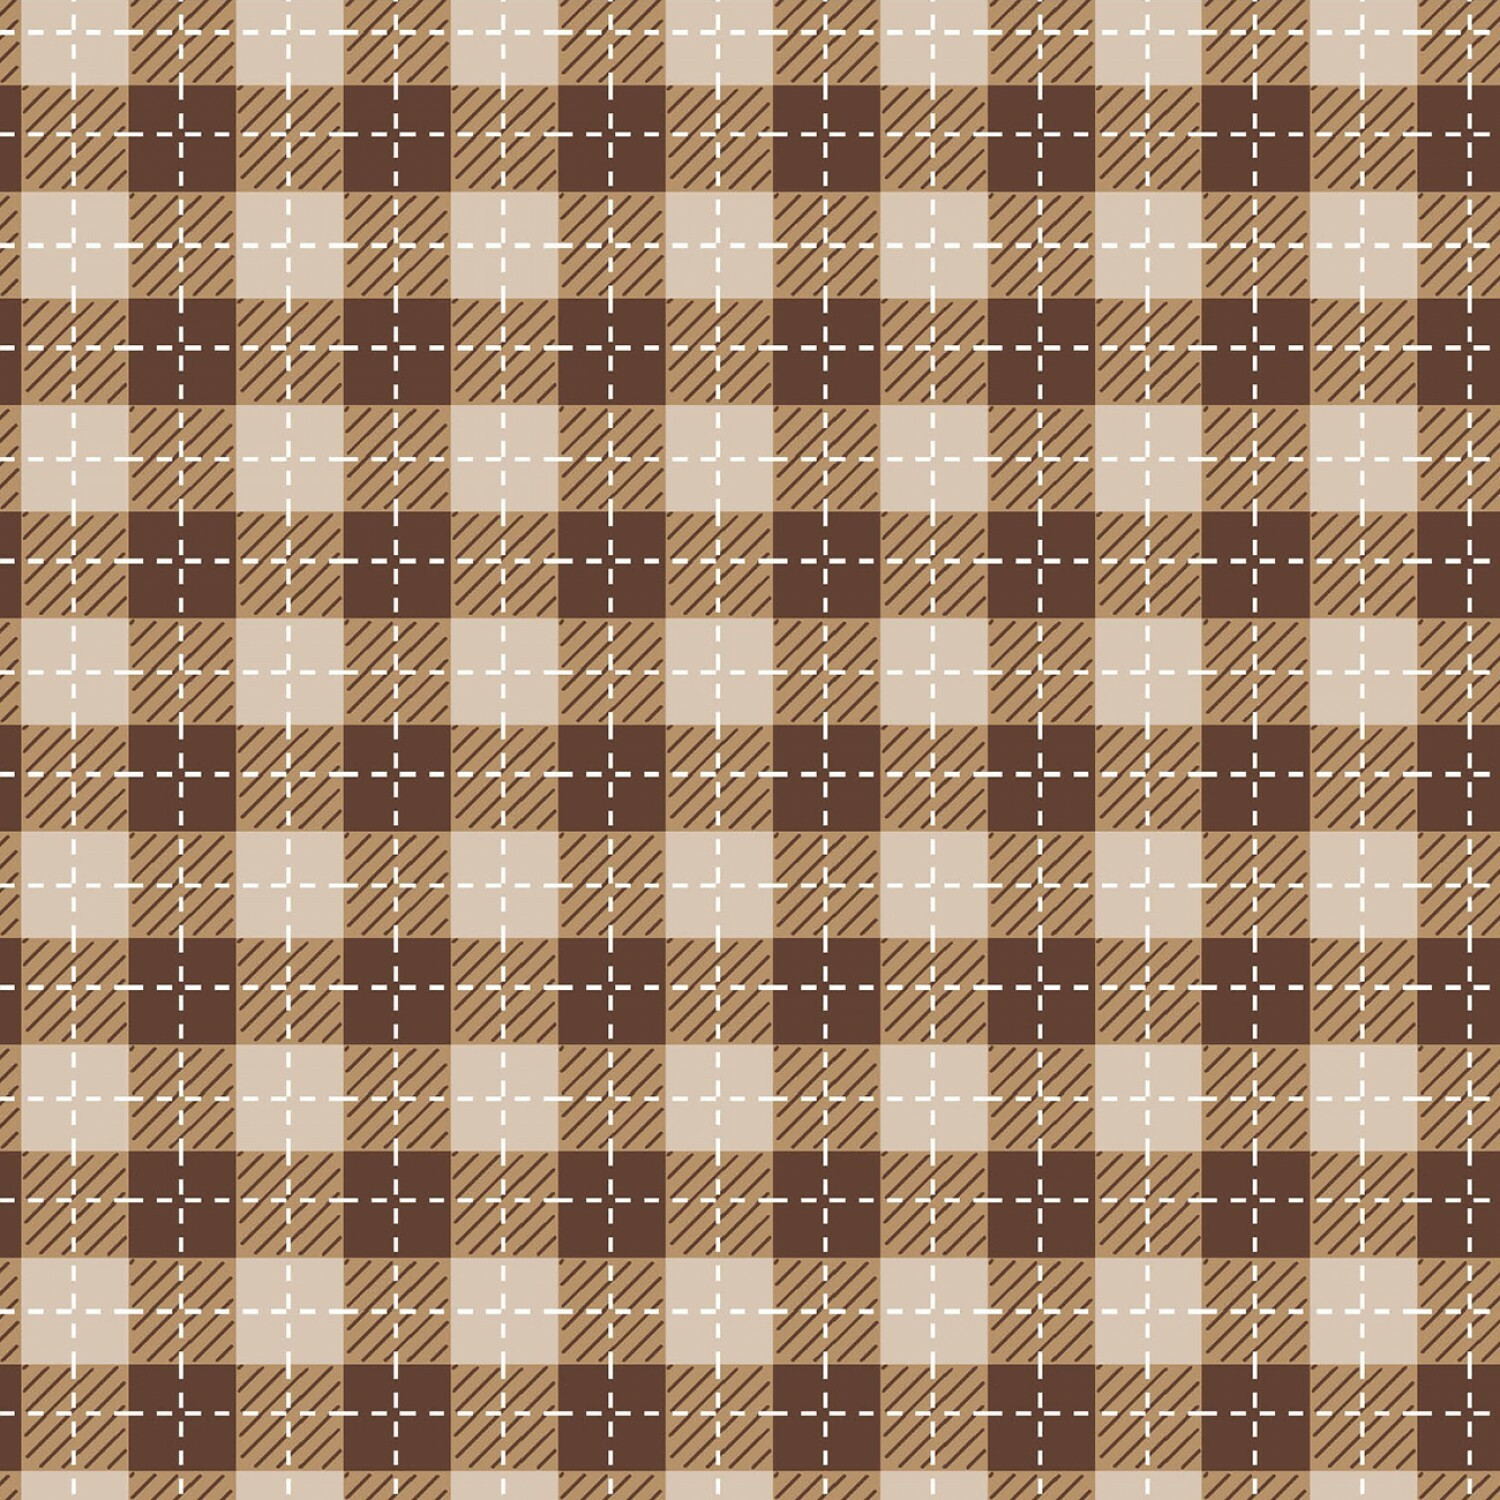 Tan and Brown Buffalo Plaid - We Whisk You A Merry Christmas - 1/2m cut 56627